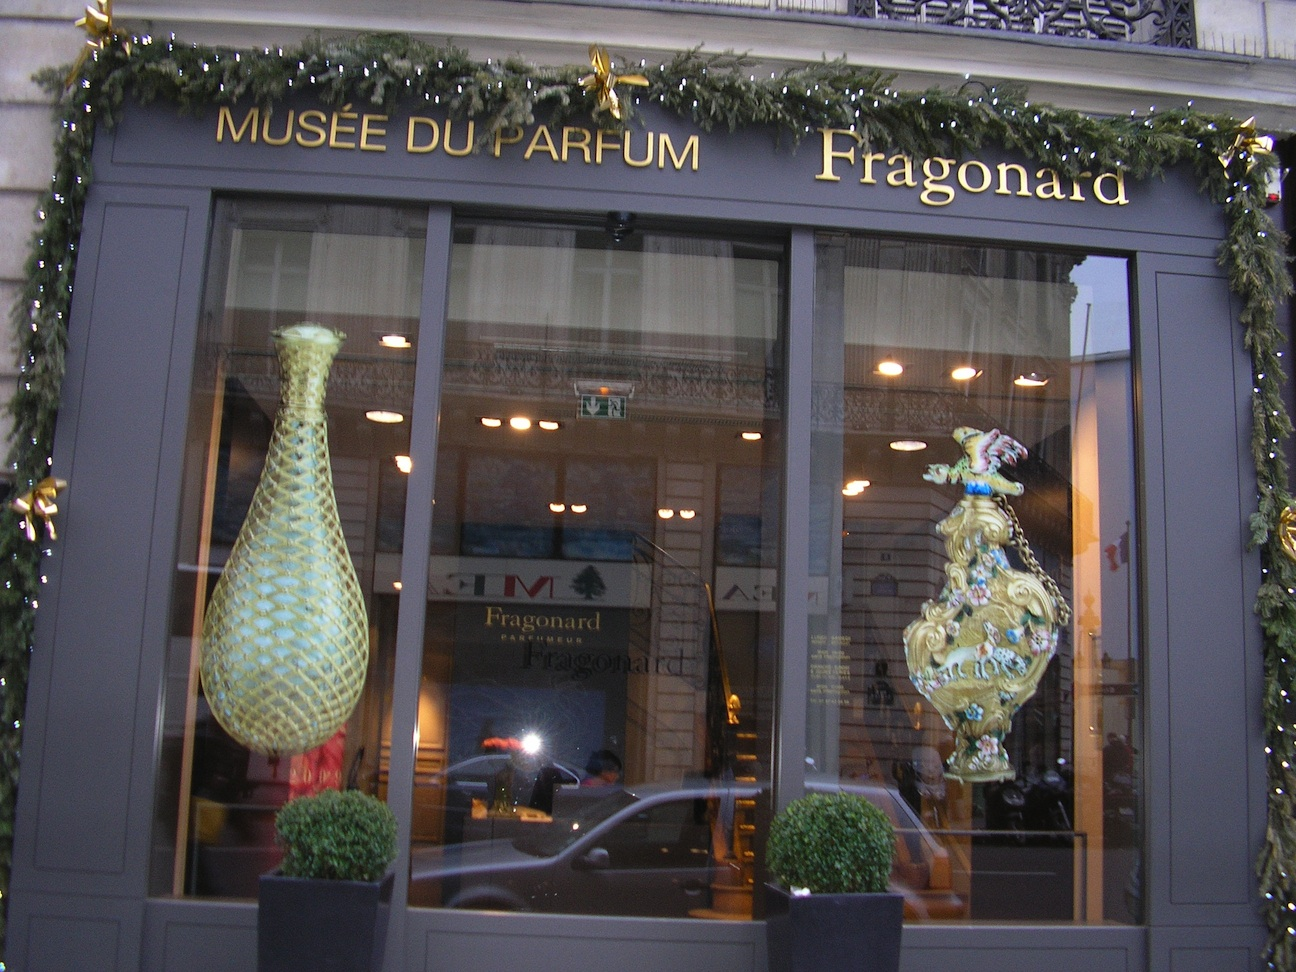 Happy new year from paris paris adventure blog - Fragonard musee du parfum ...